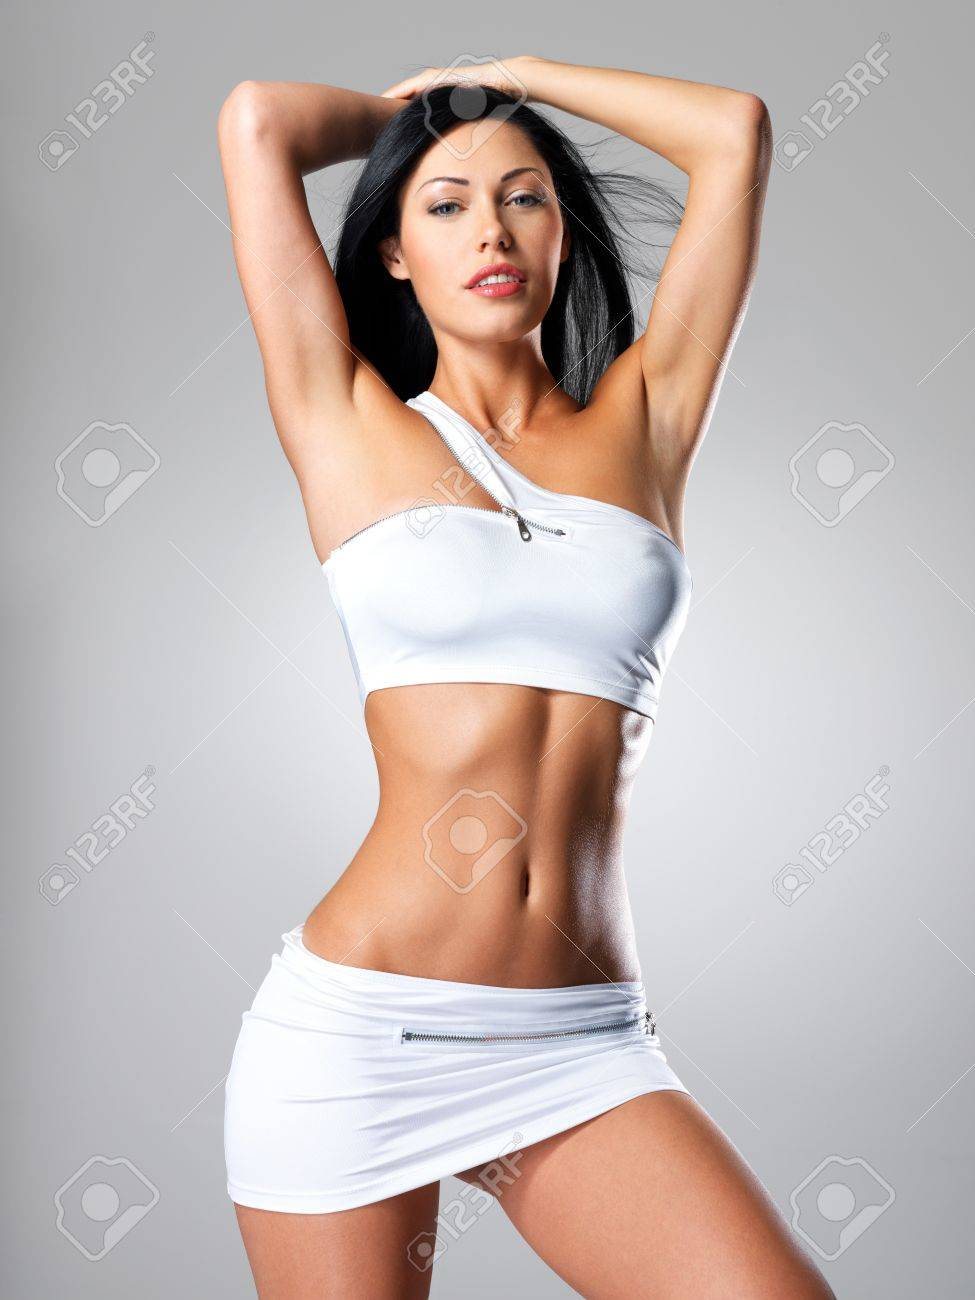 Pretty woman with perfect tanned body - a studio shot Stock Photo - 16642961